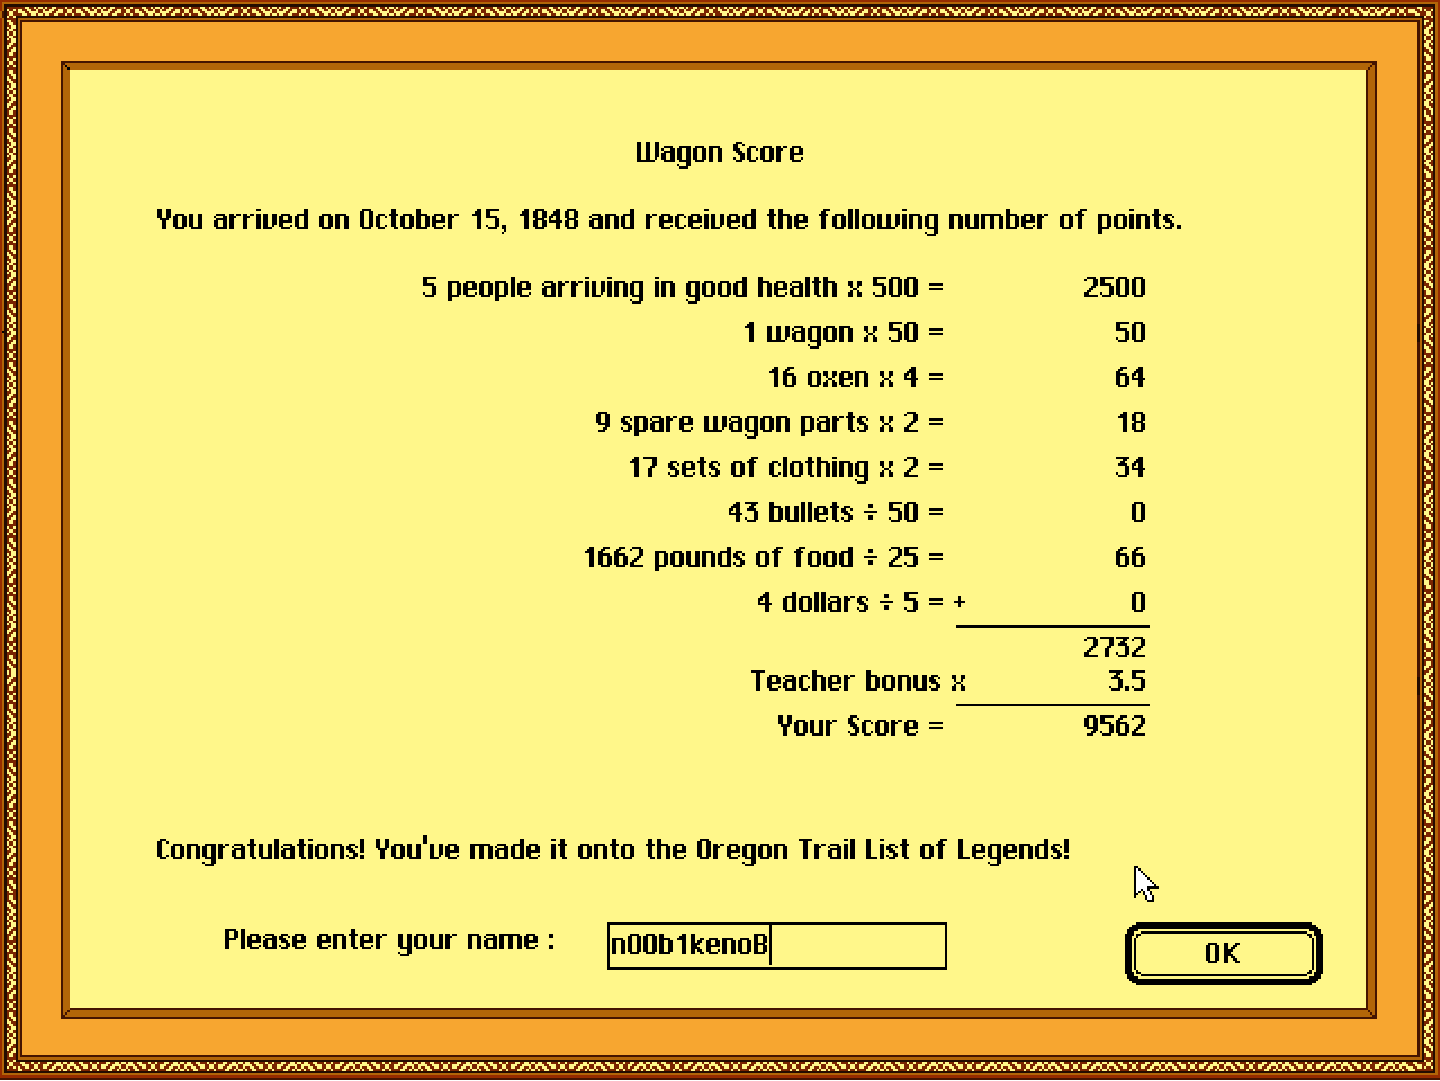 The Oregon Trail Deluxe 9,562 points